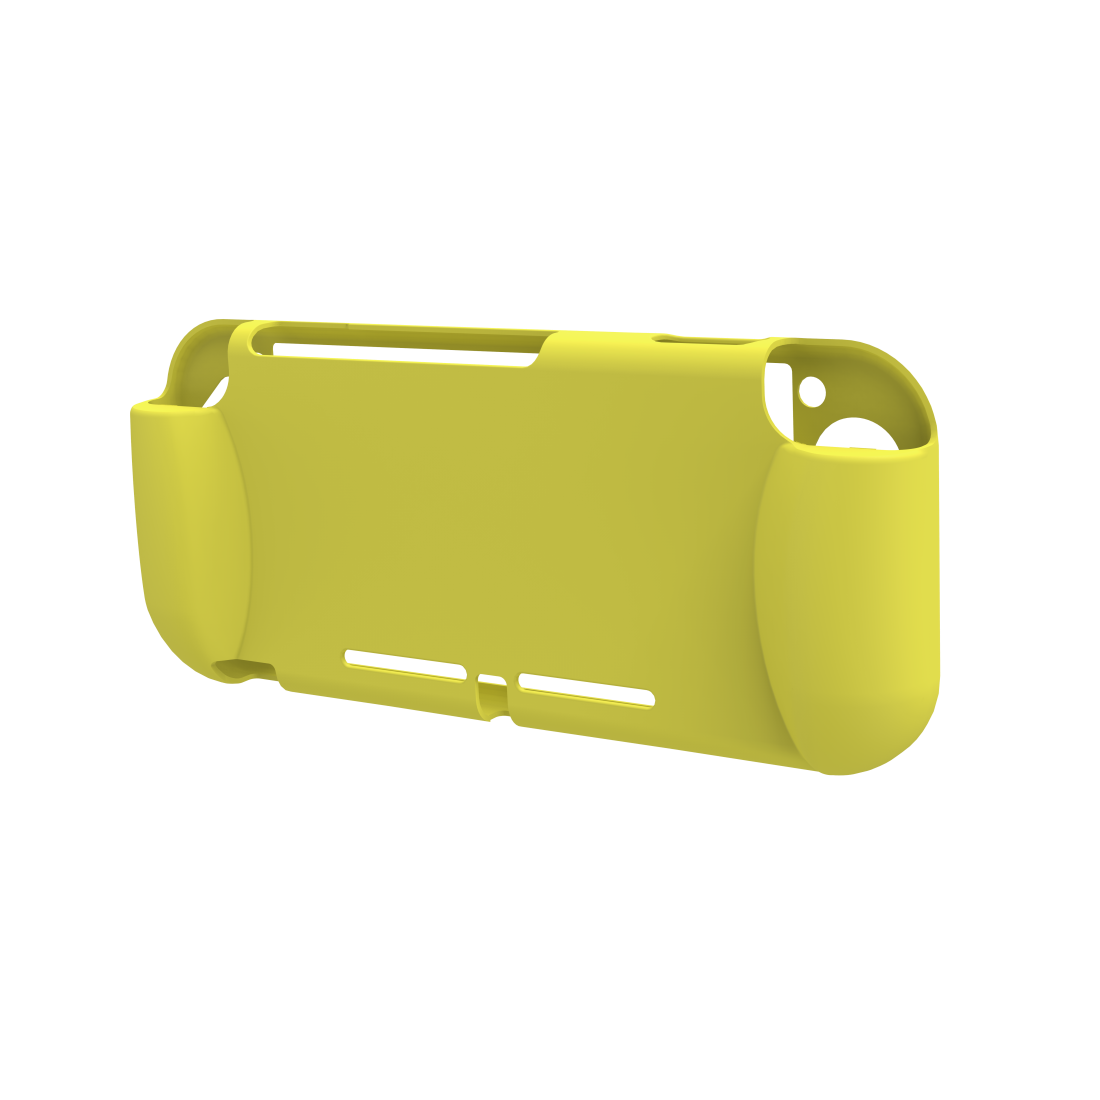 abx2 High-Res Image 2 - Hama, Grip Protective Sleeve for Nintendo Switch Lite, yellow